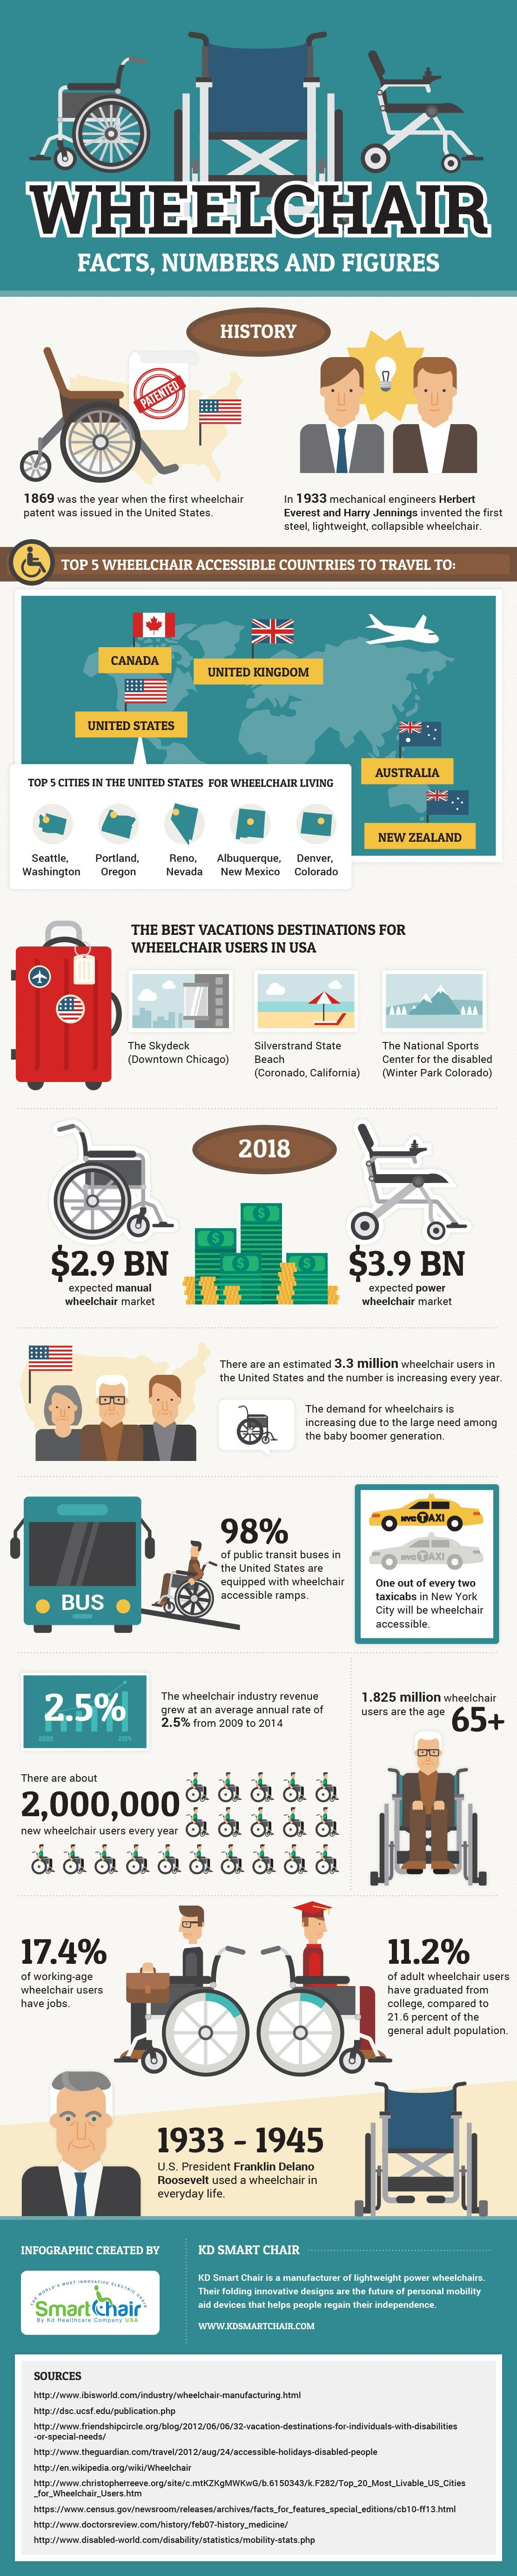 wheelchair facts infographic